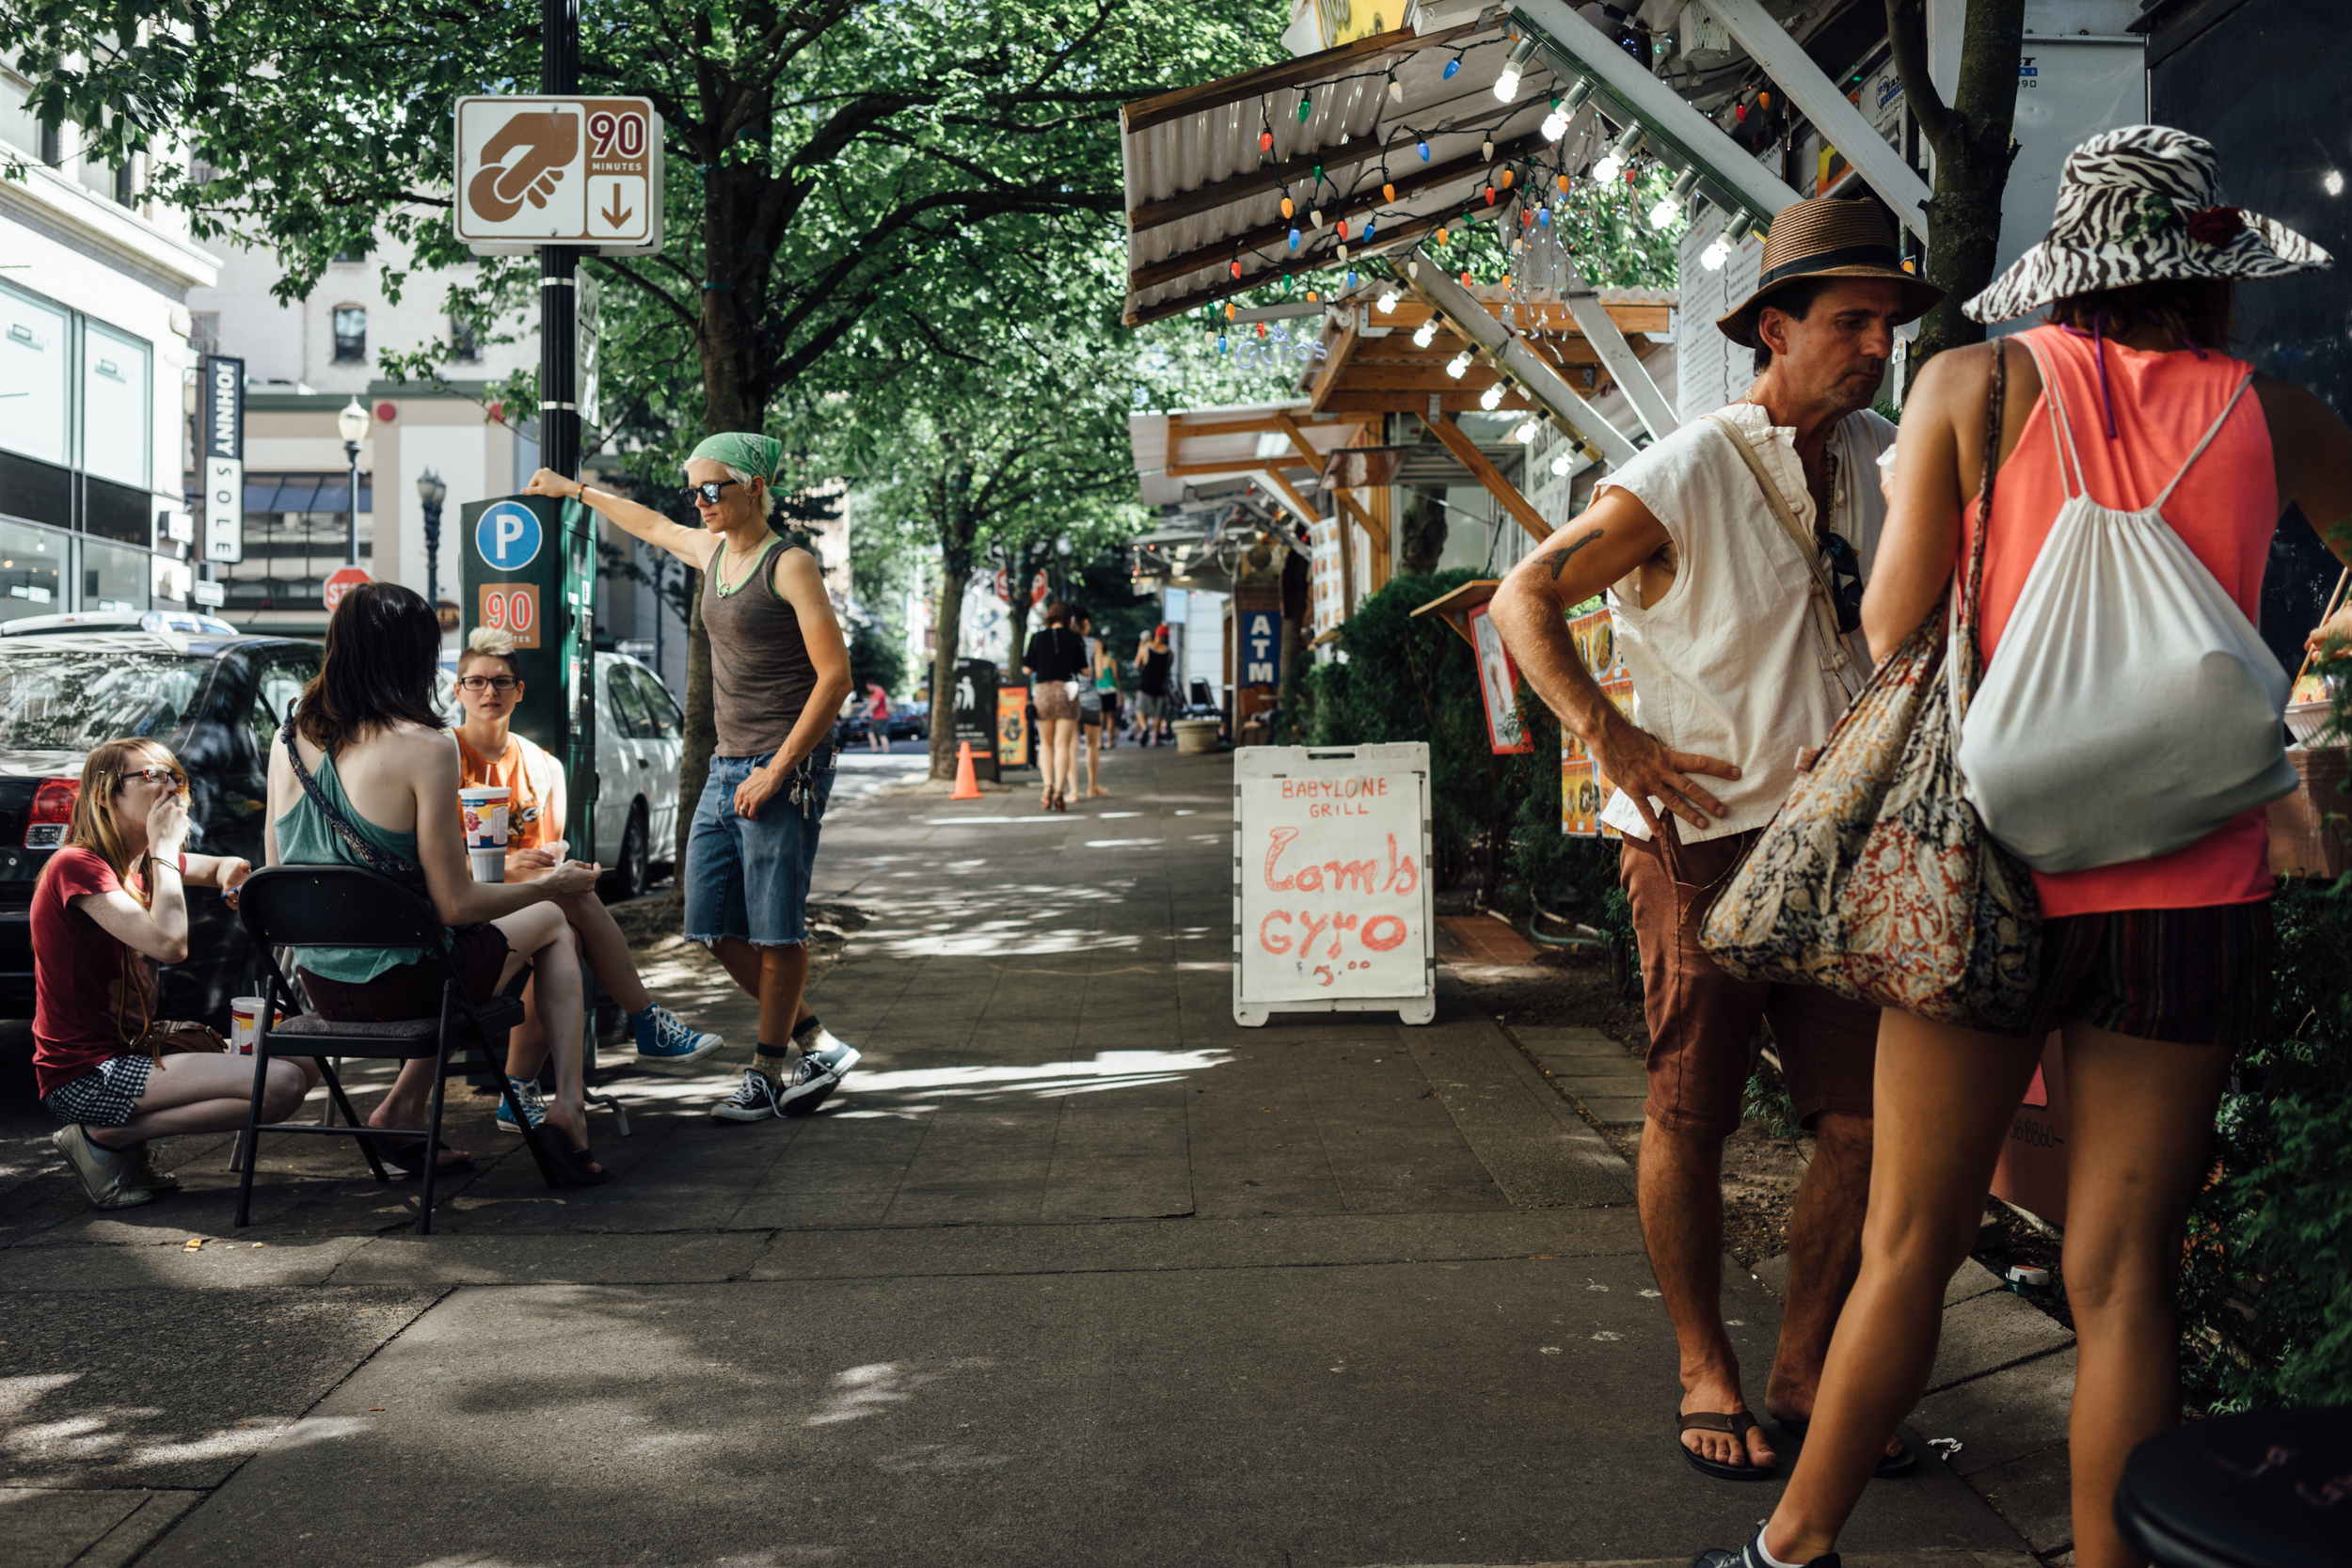 Food trucks can be found all over Portland; A favorite place to hang out for hipsters and tourists alike.